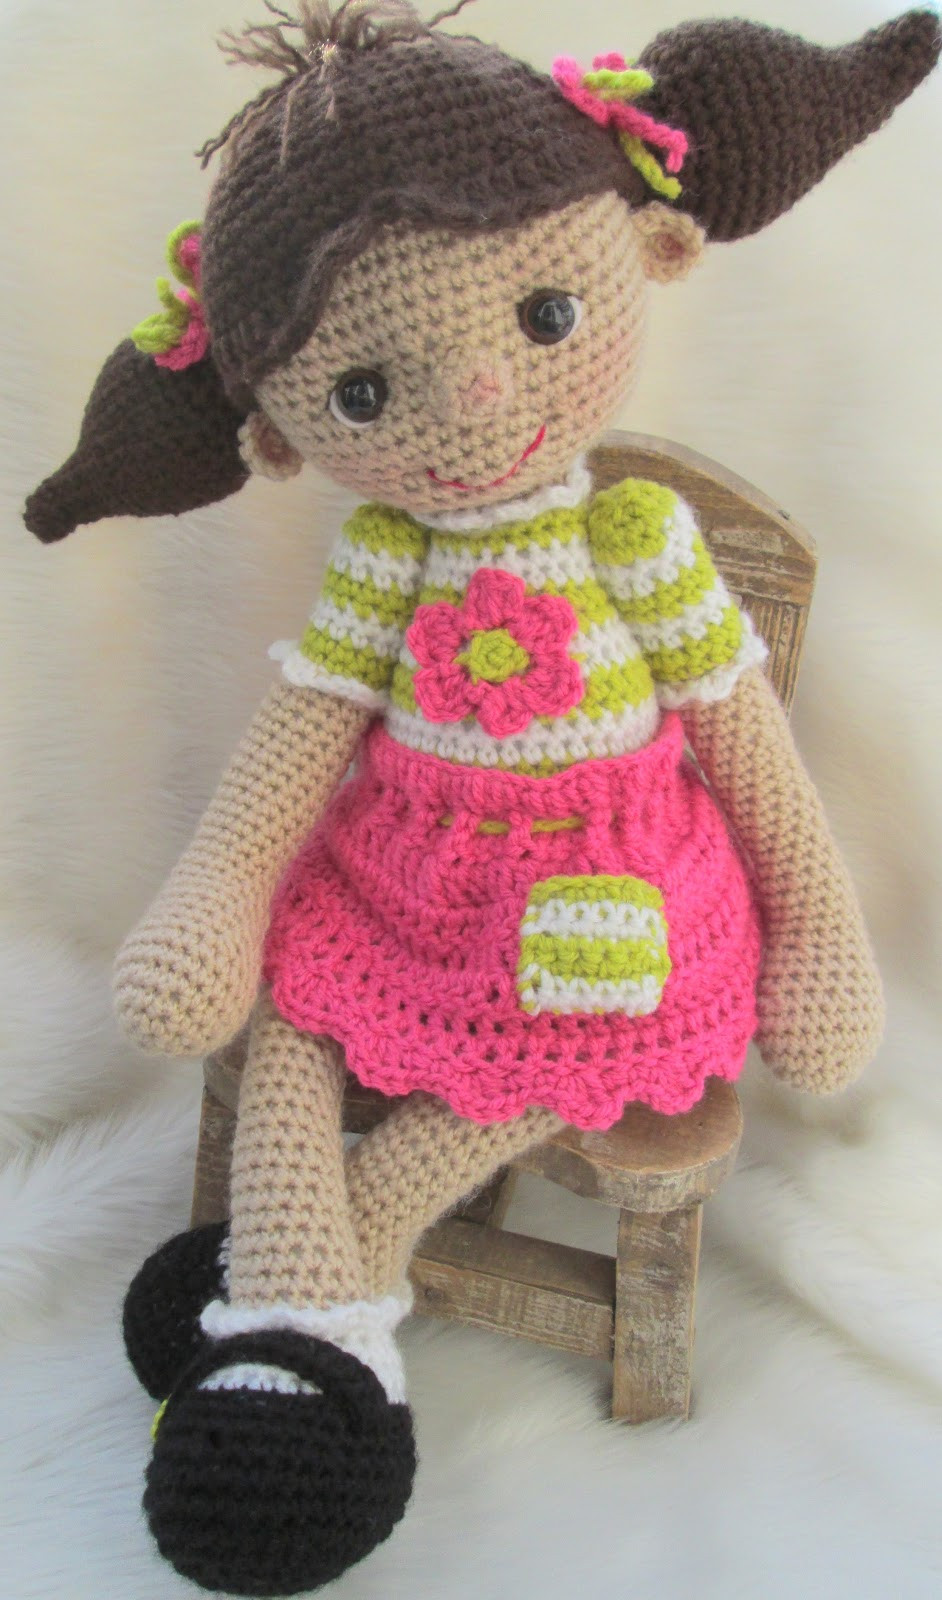 Crochet Doll Patterns Awesome Teri S Blog so Cute Dolly A New Huggable Dolly Pattern Of Adorable 42 Ideas Crochet Doll Patterns